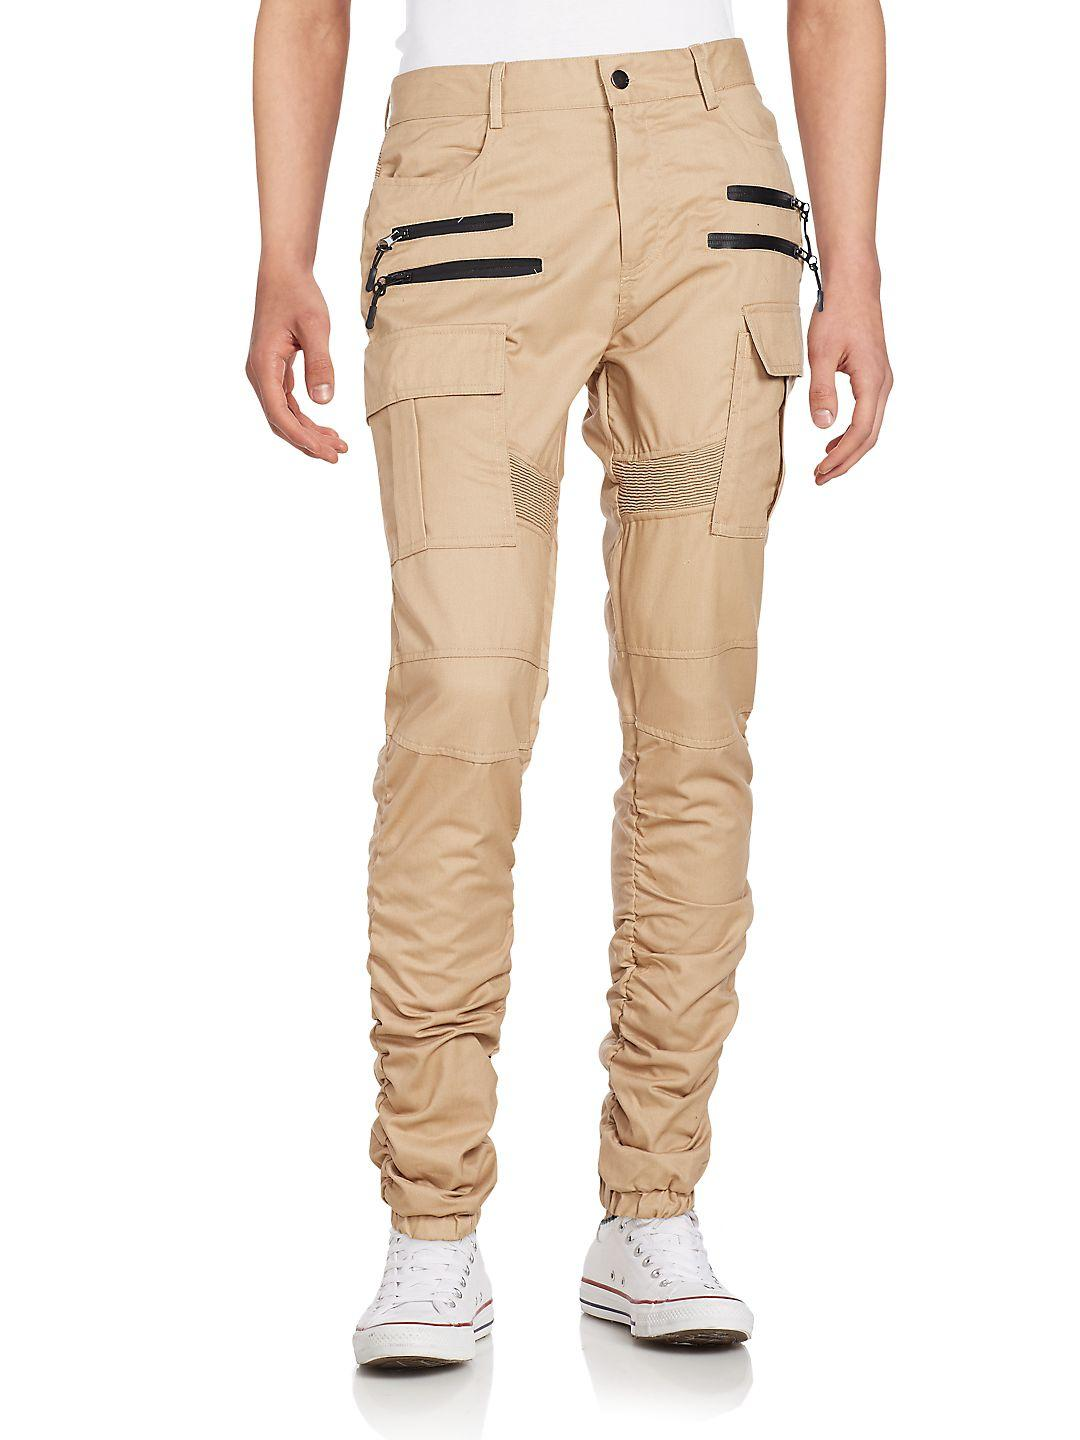 American Stitch Synthetic Twill Cargo Pants for Men